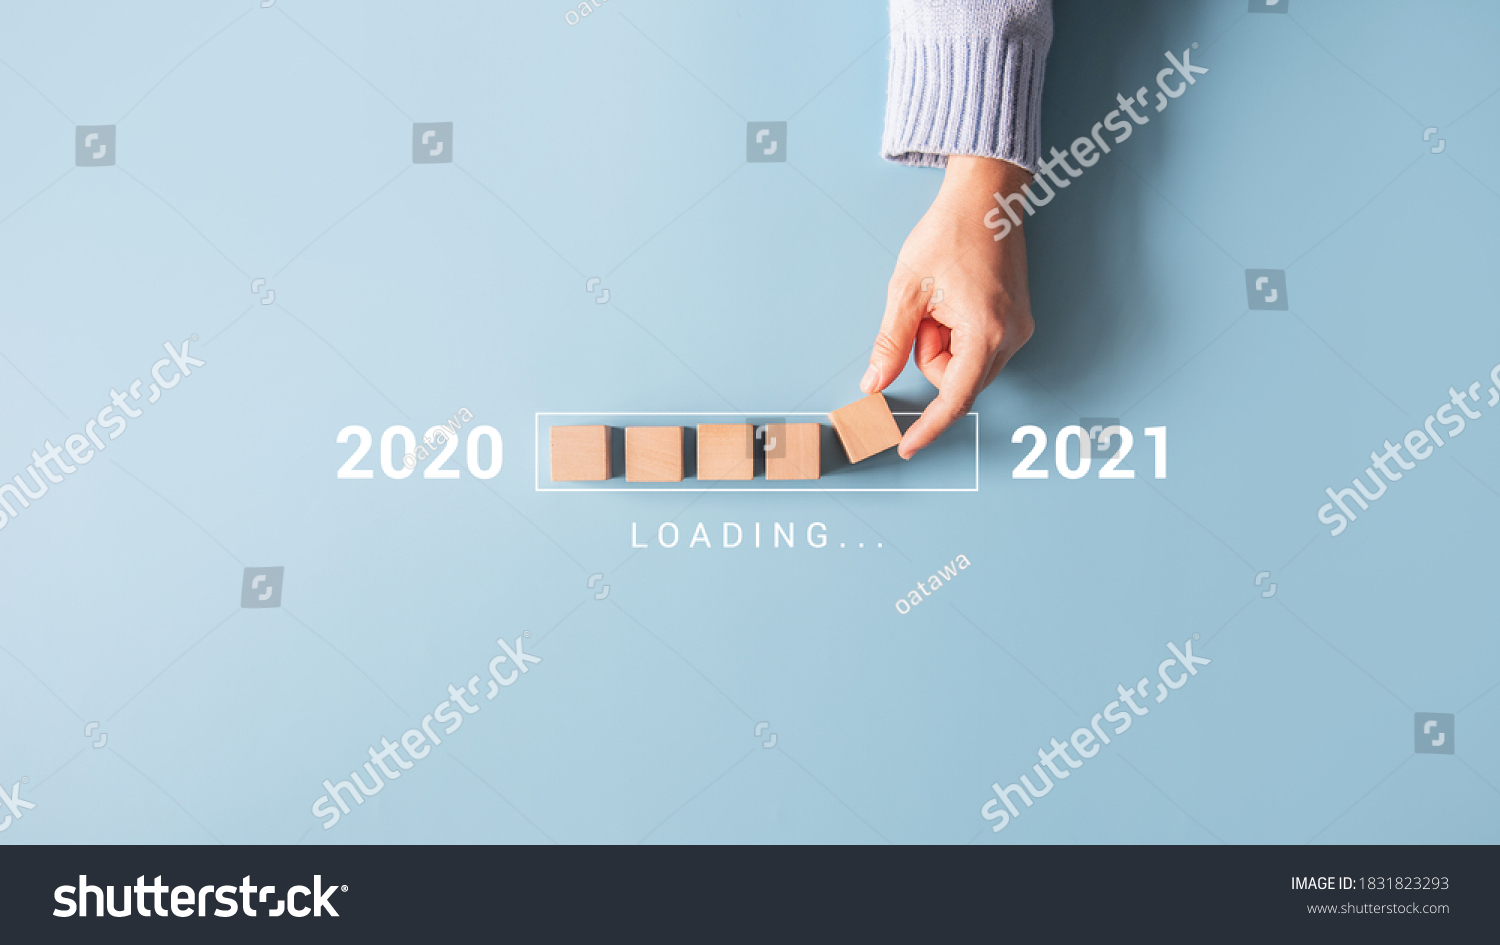 Loading new year 2020 to 2021 with hand putting wood cube in progress bar. #1831823293